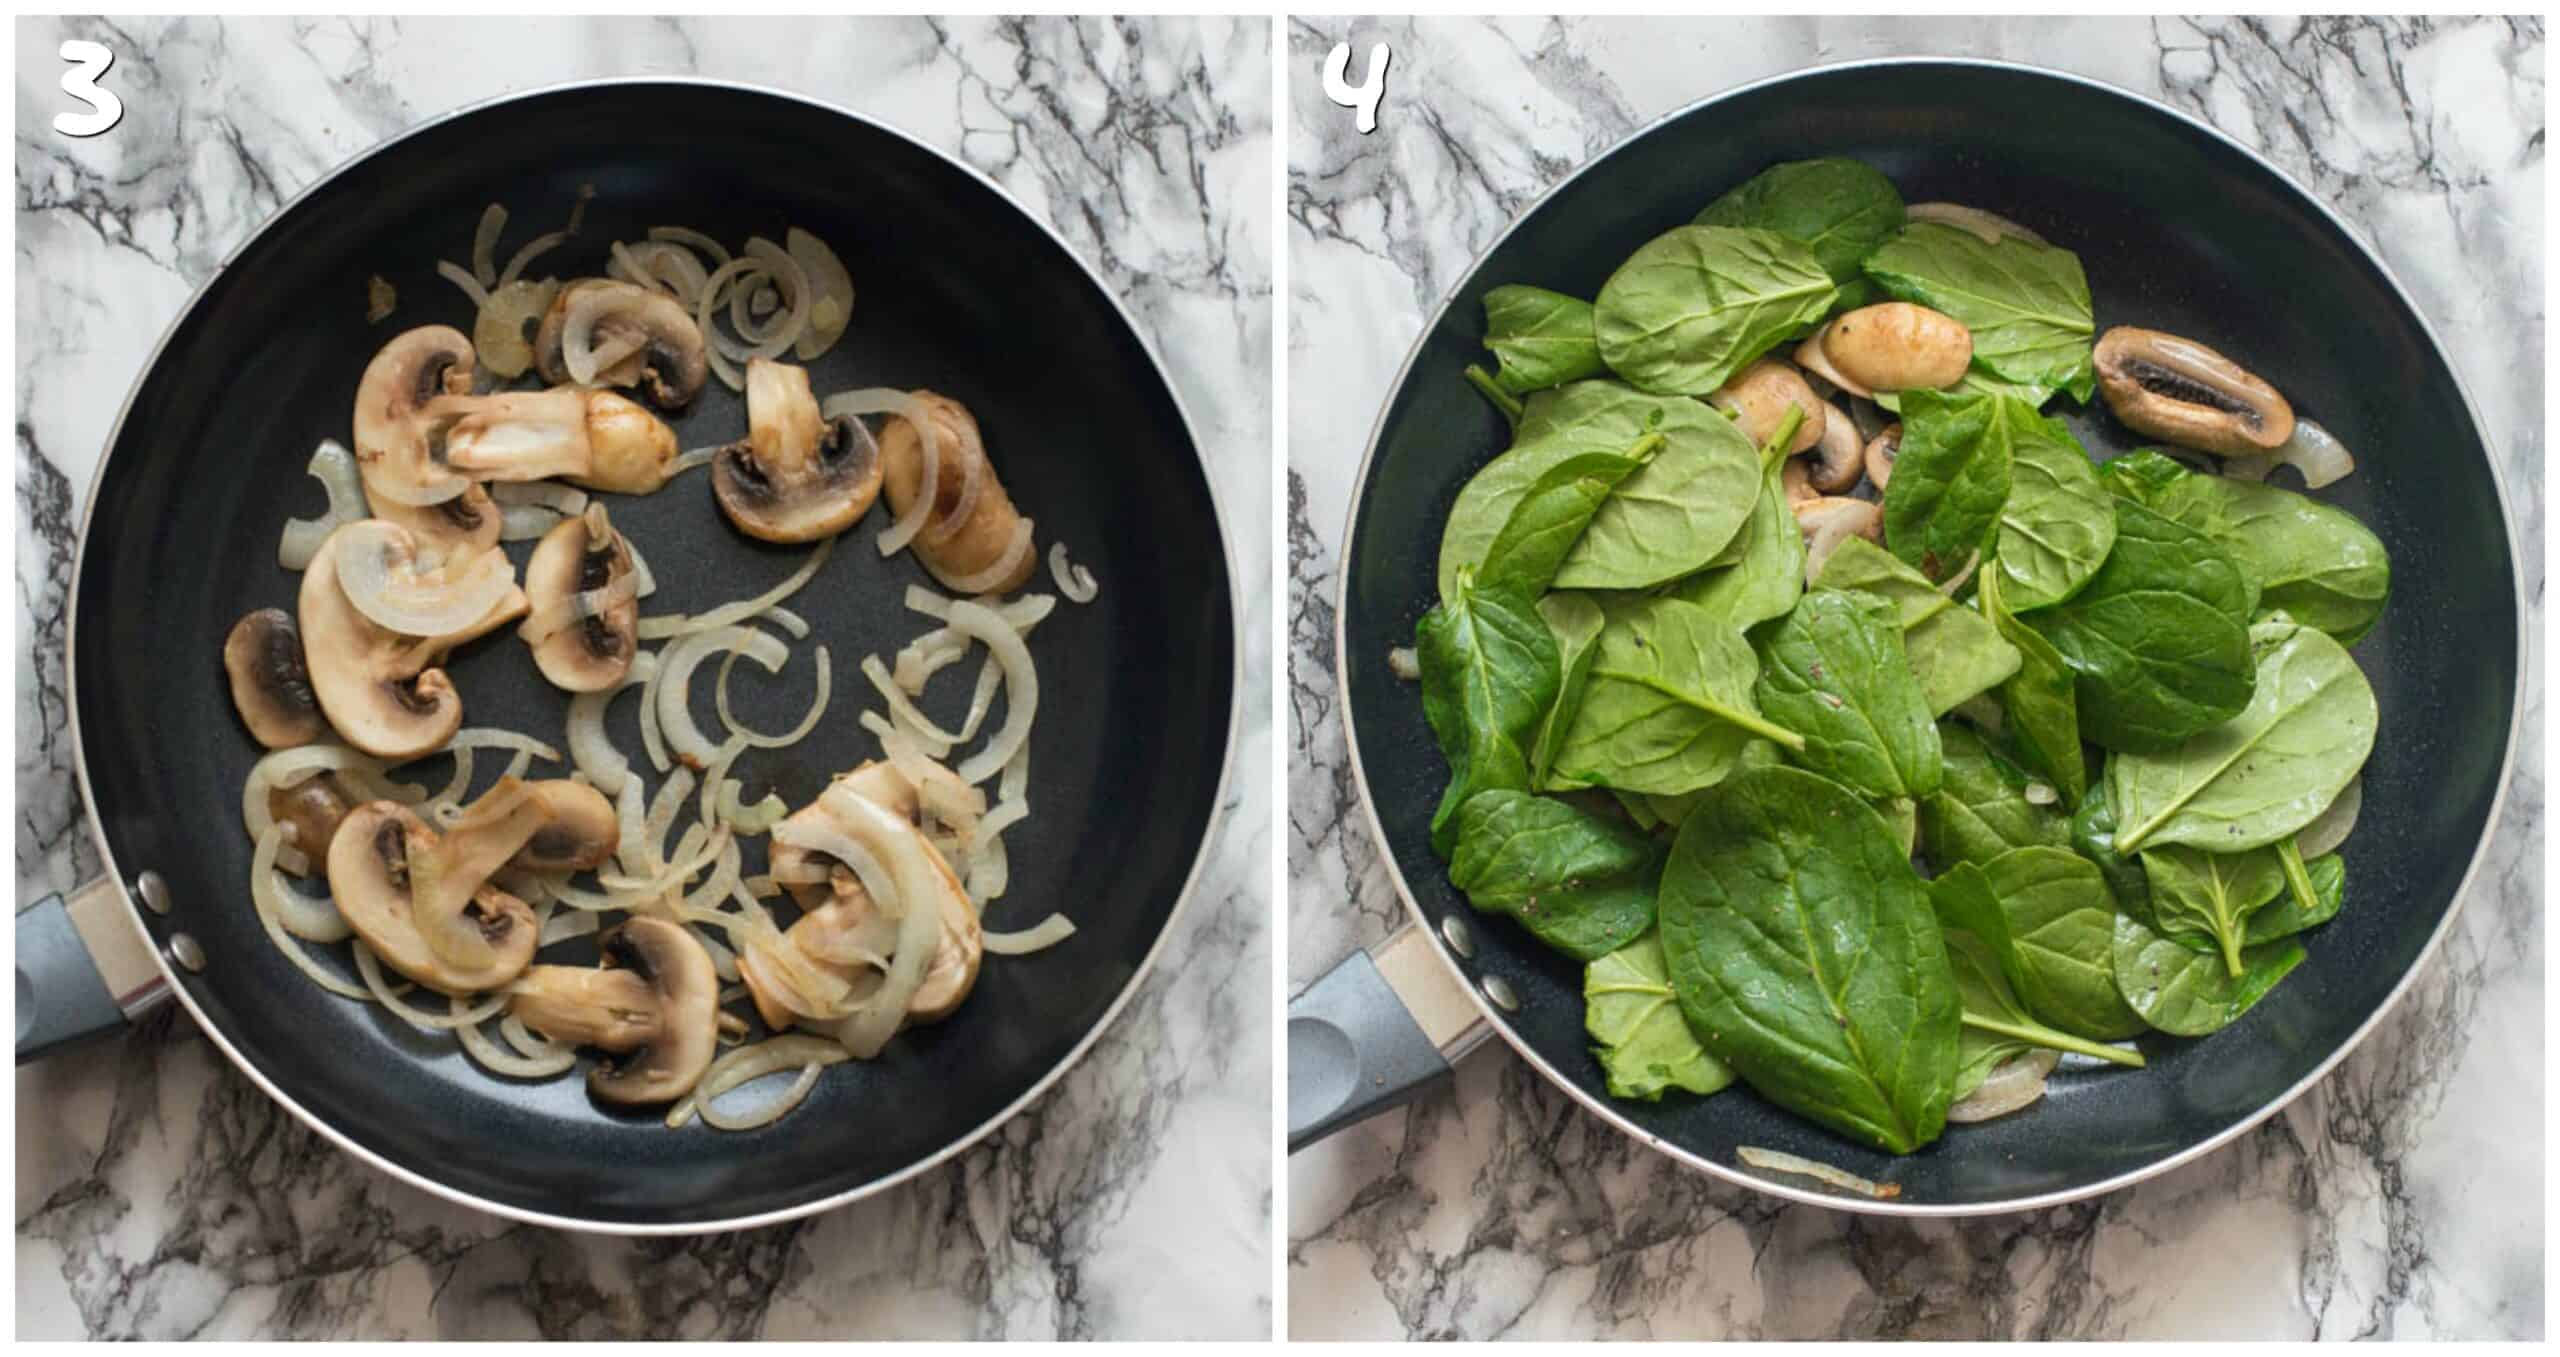 steps 3-4 adding mushrooms and spinach